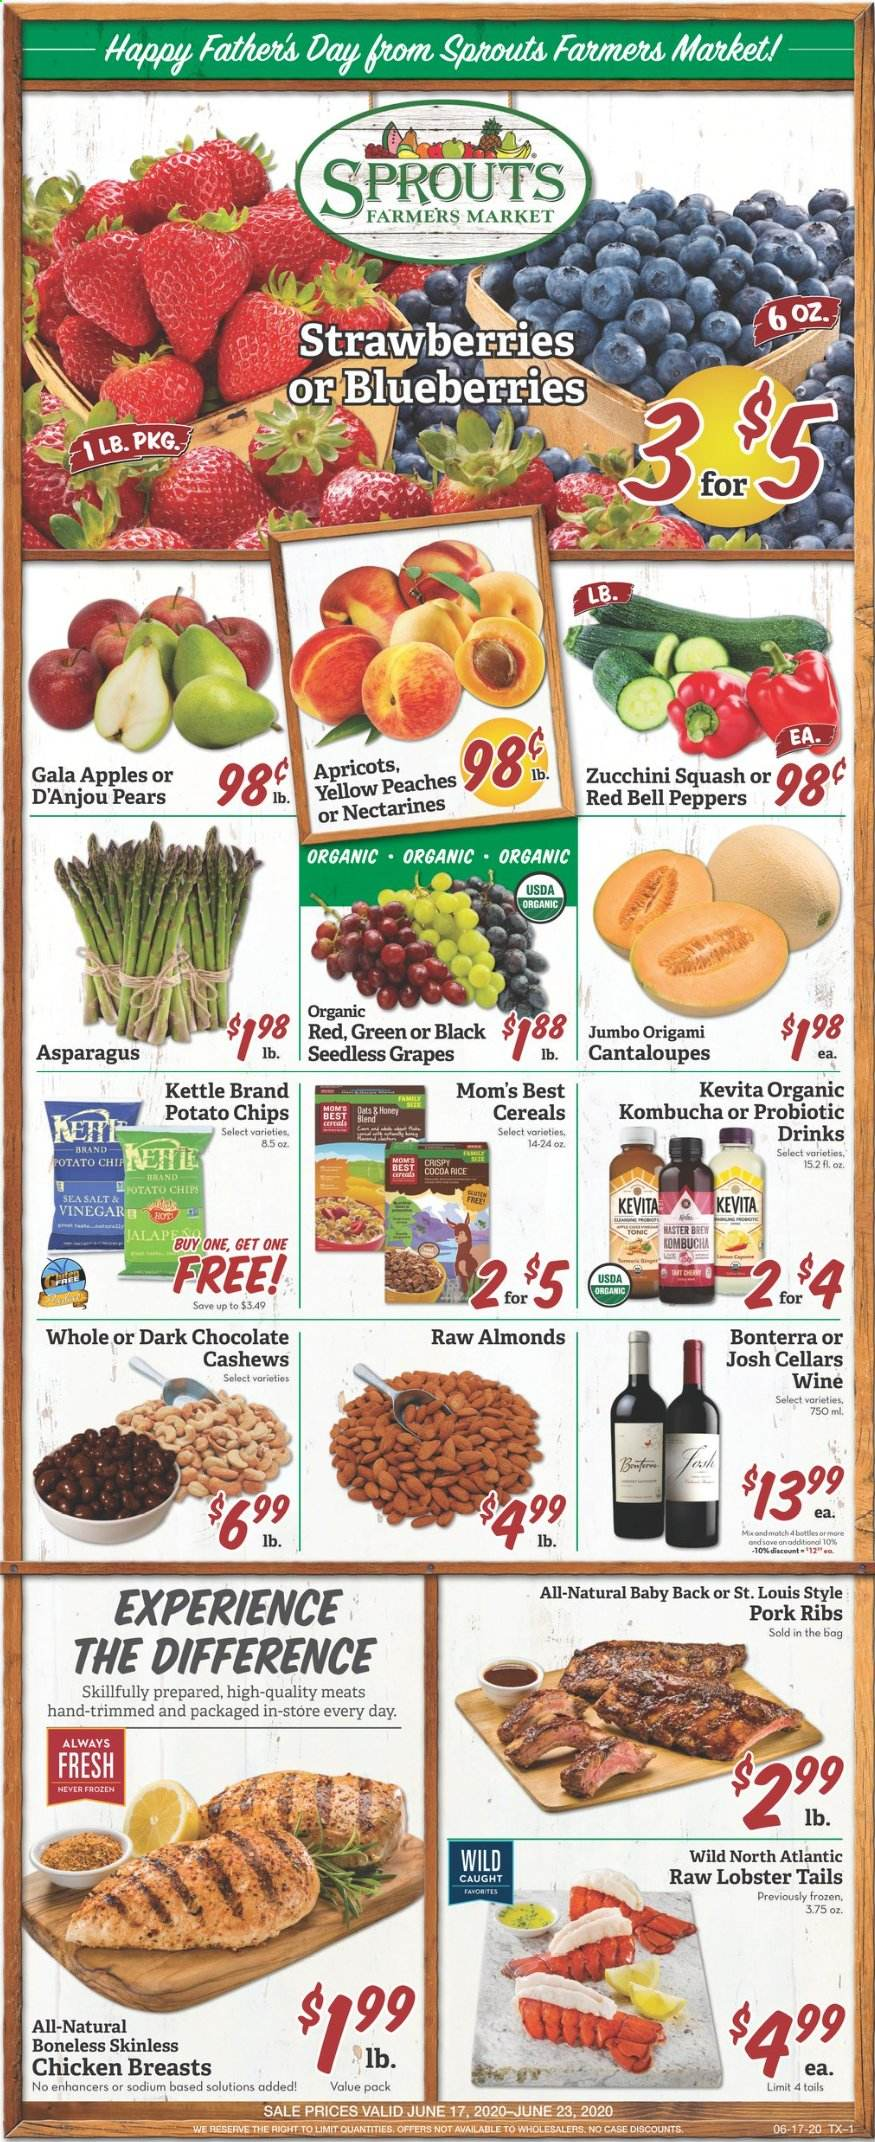 Sprouts Flyer  - 06.17.2020 - 06.23.2020. Page 1.